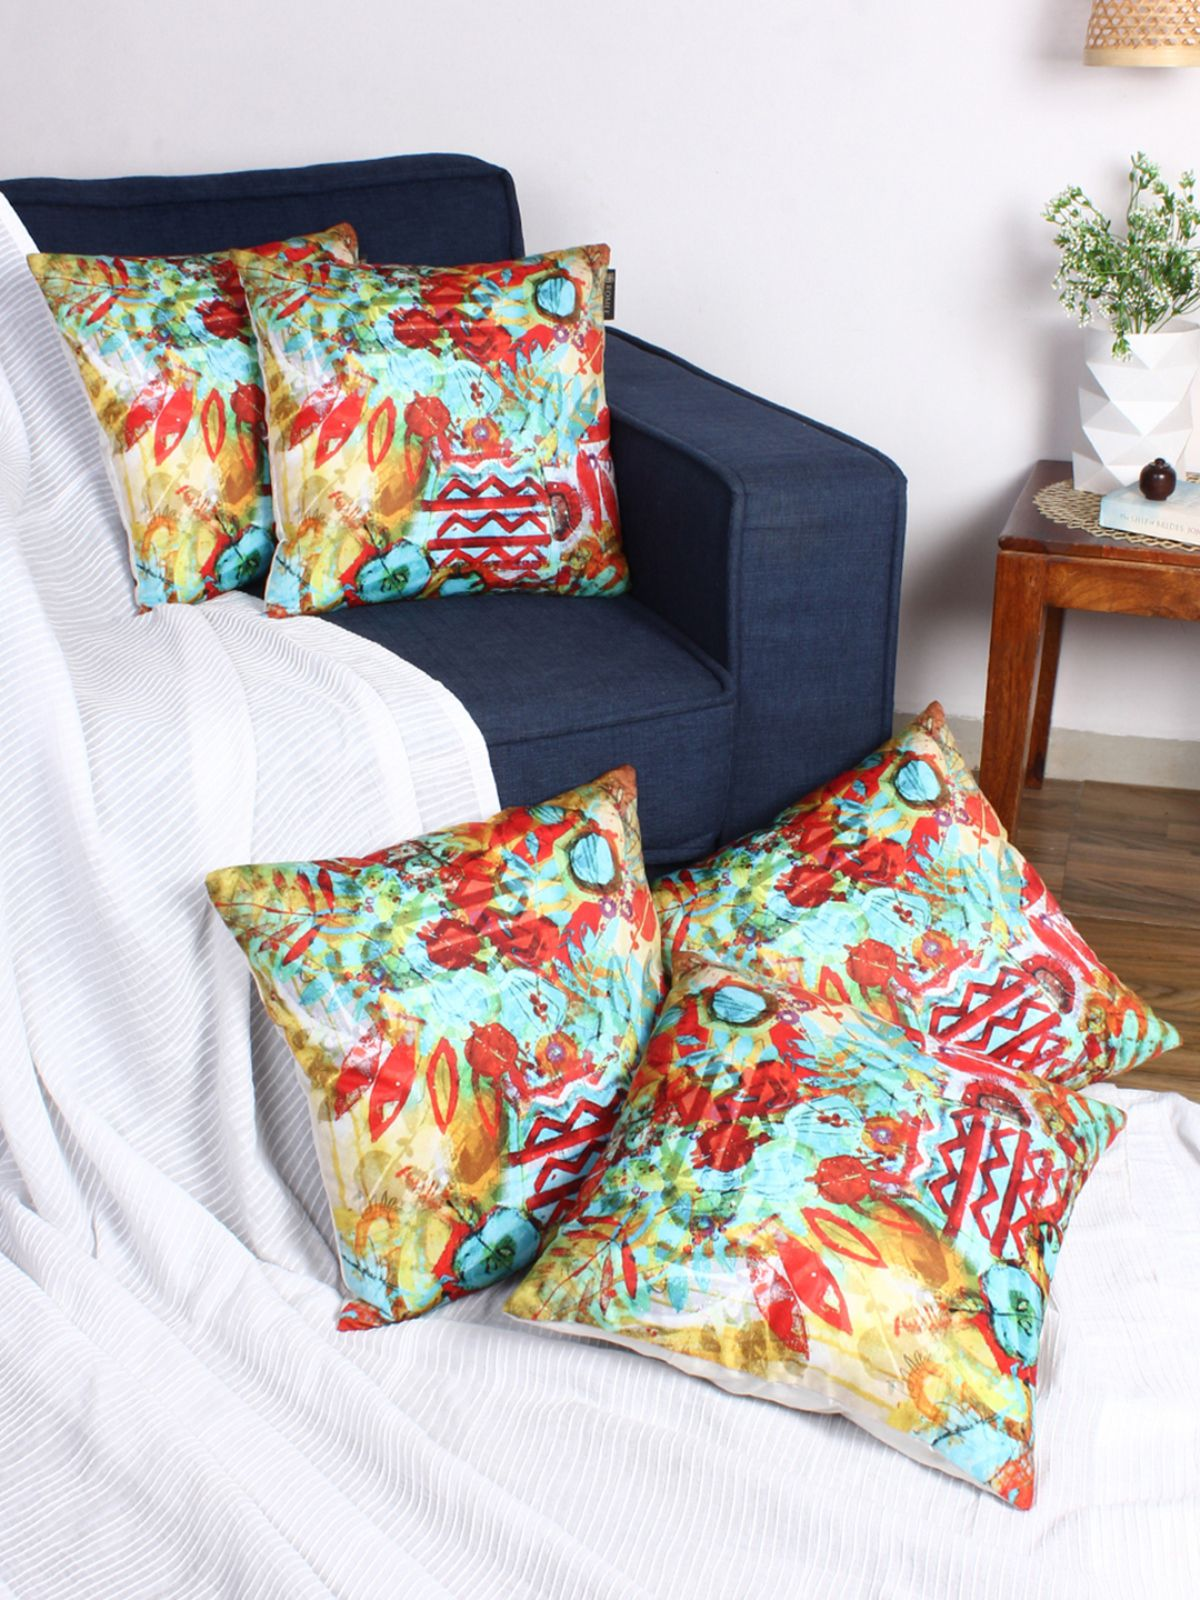 Romee Set Of 5 Velvet Cushion Covers 40x40 Cm 16x16 Buy Online At Best Price Snapdeal